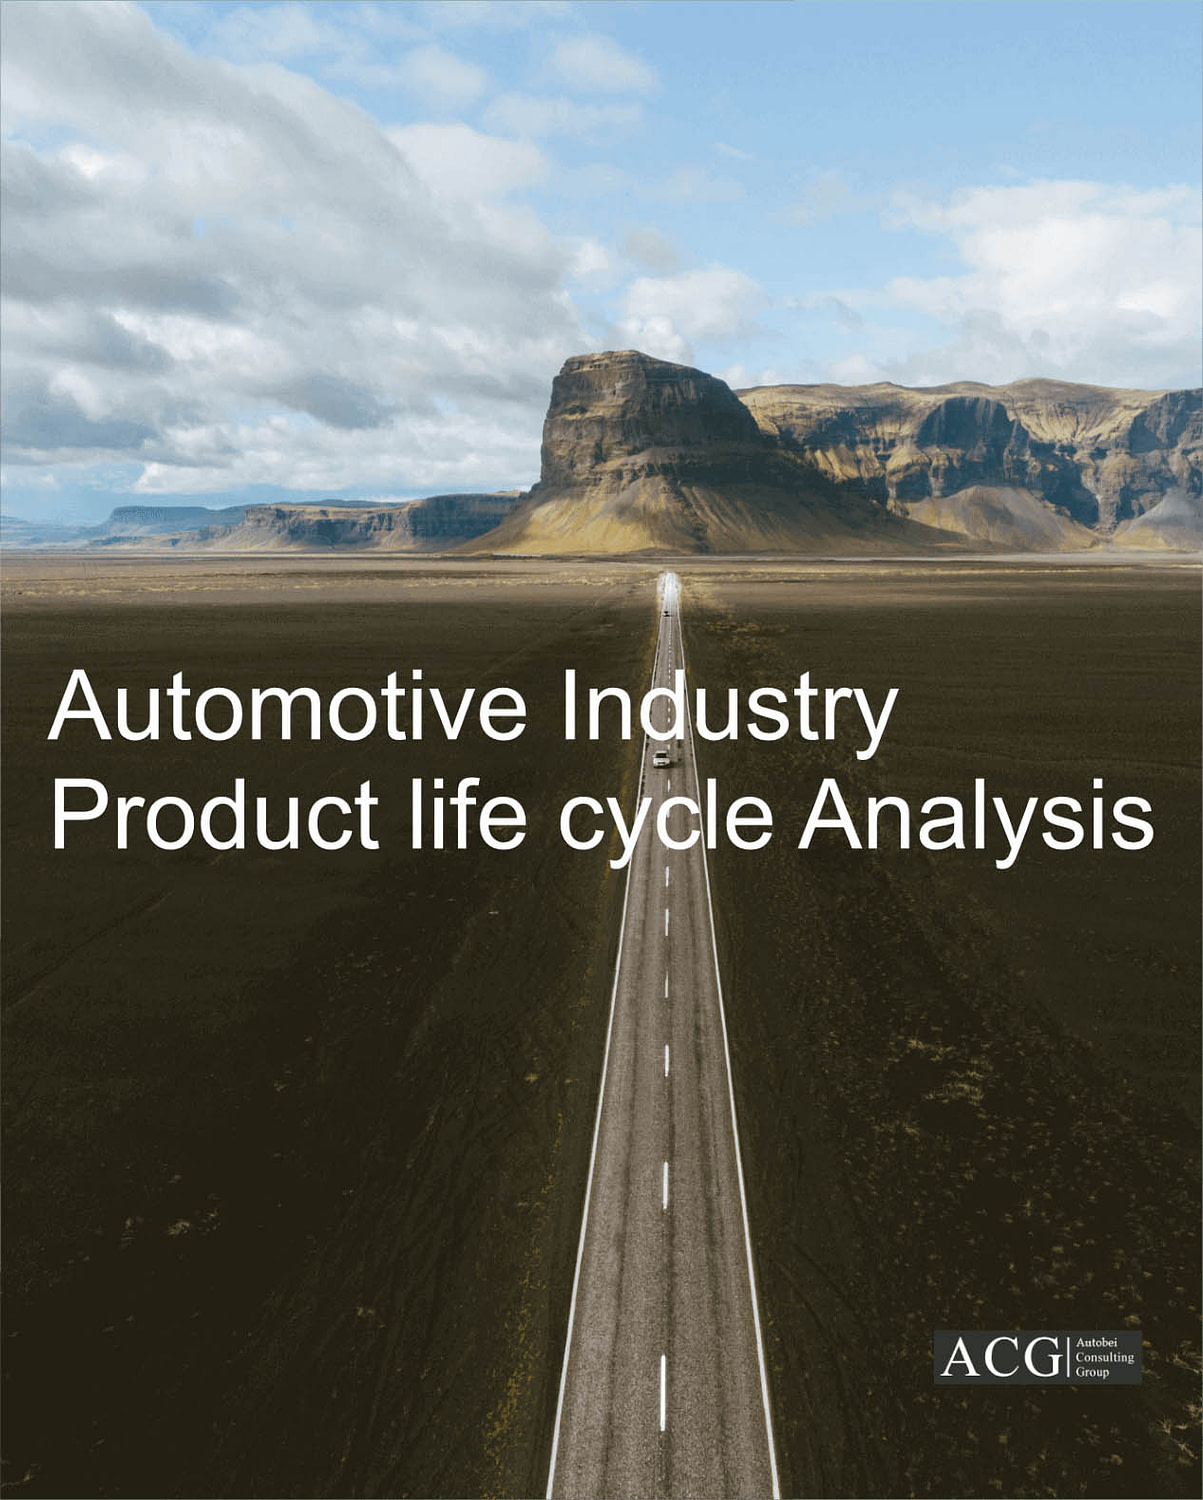 Automotive Industry Product life cycle Analysis